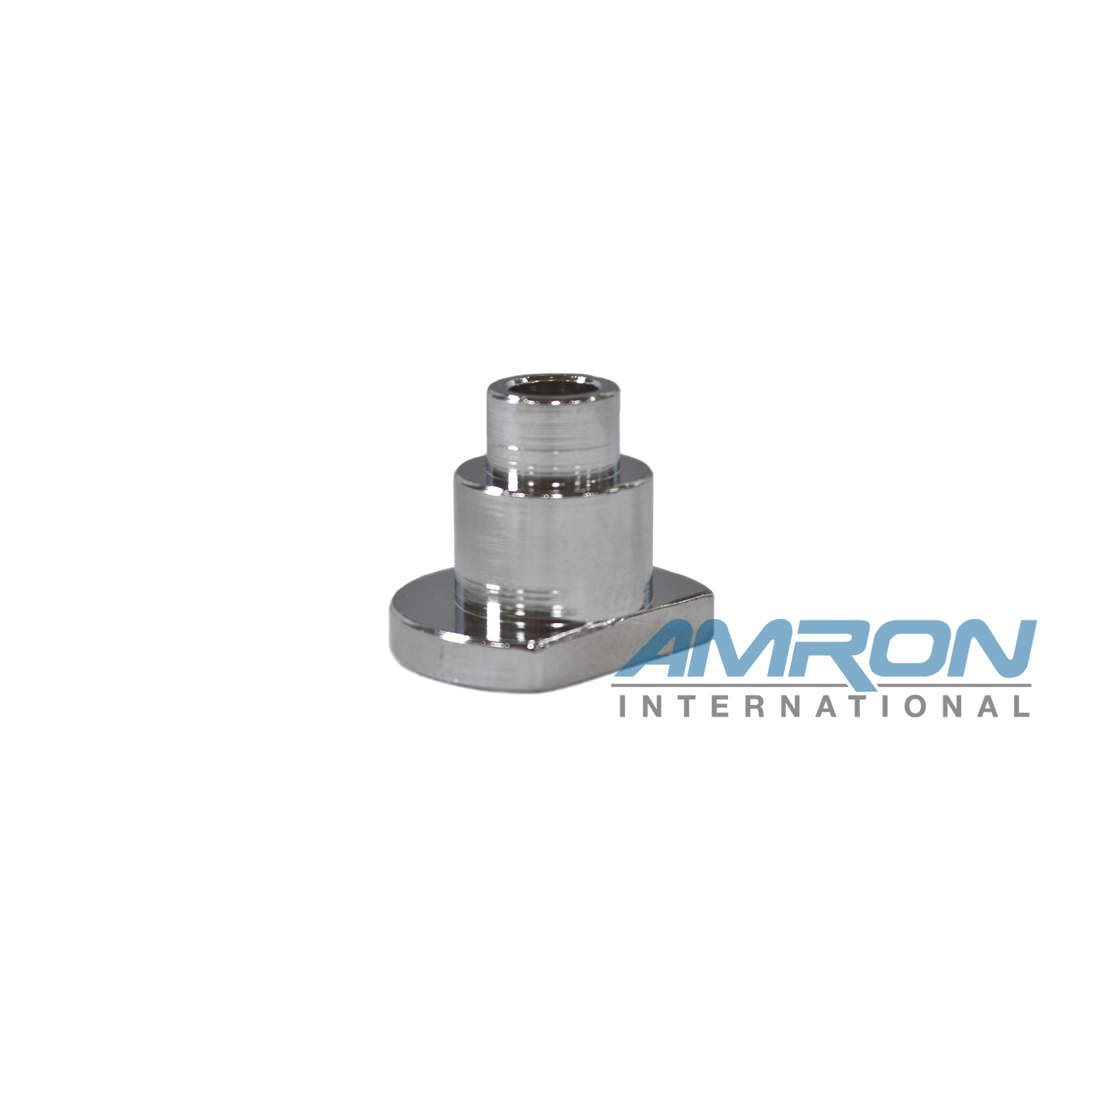 Kirby Morgan 550-122 Spring Spacer